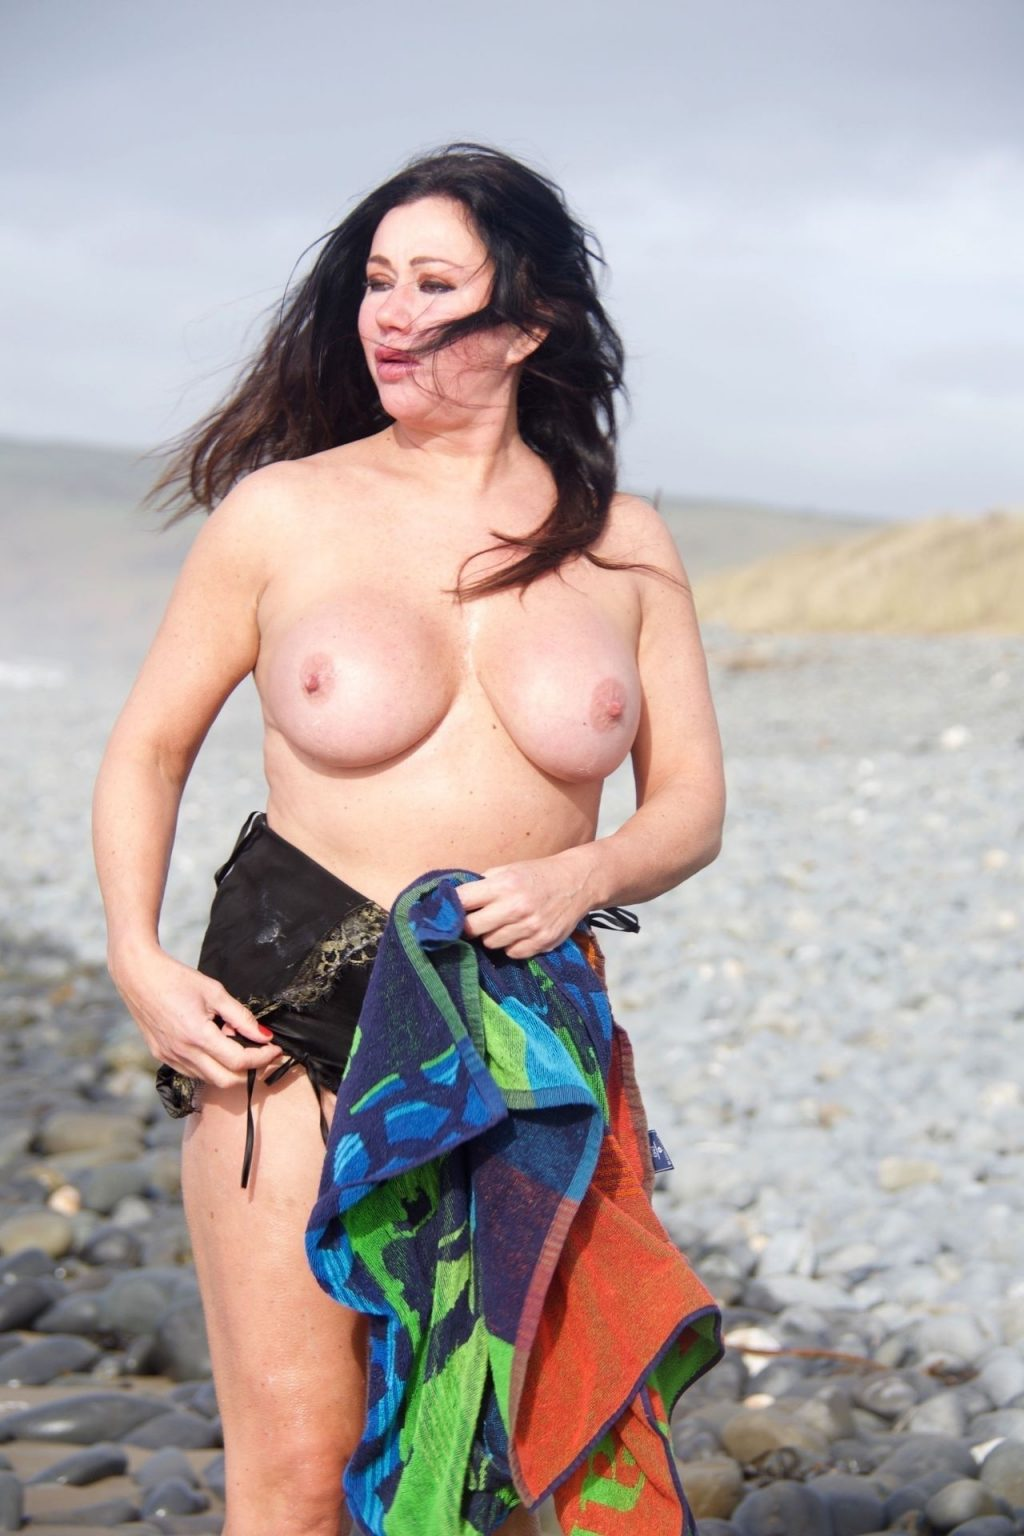 Bex tits big brother porn library